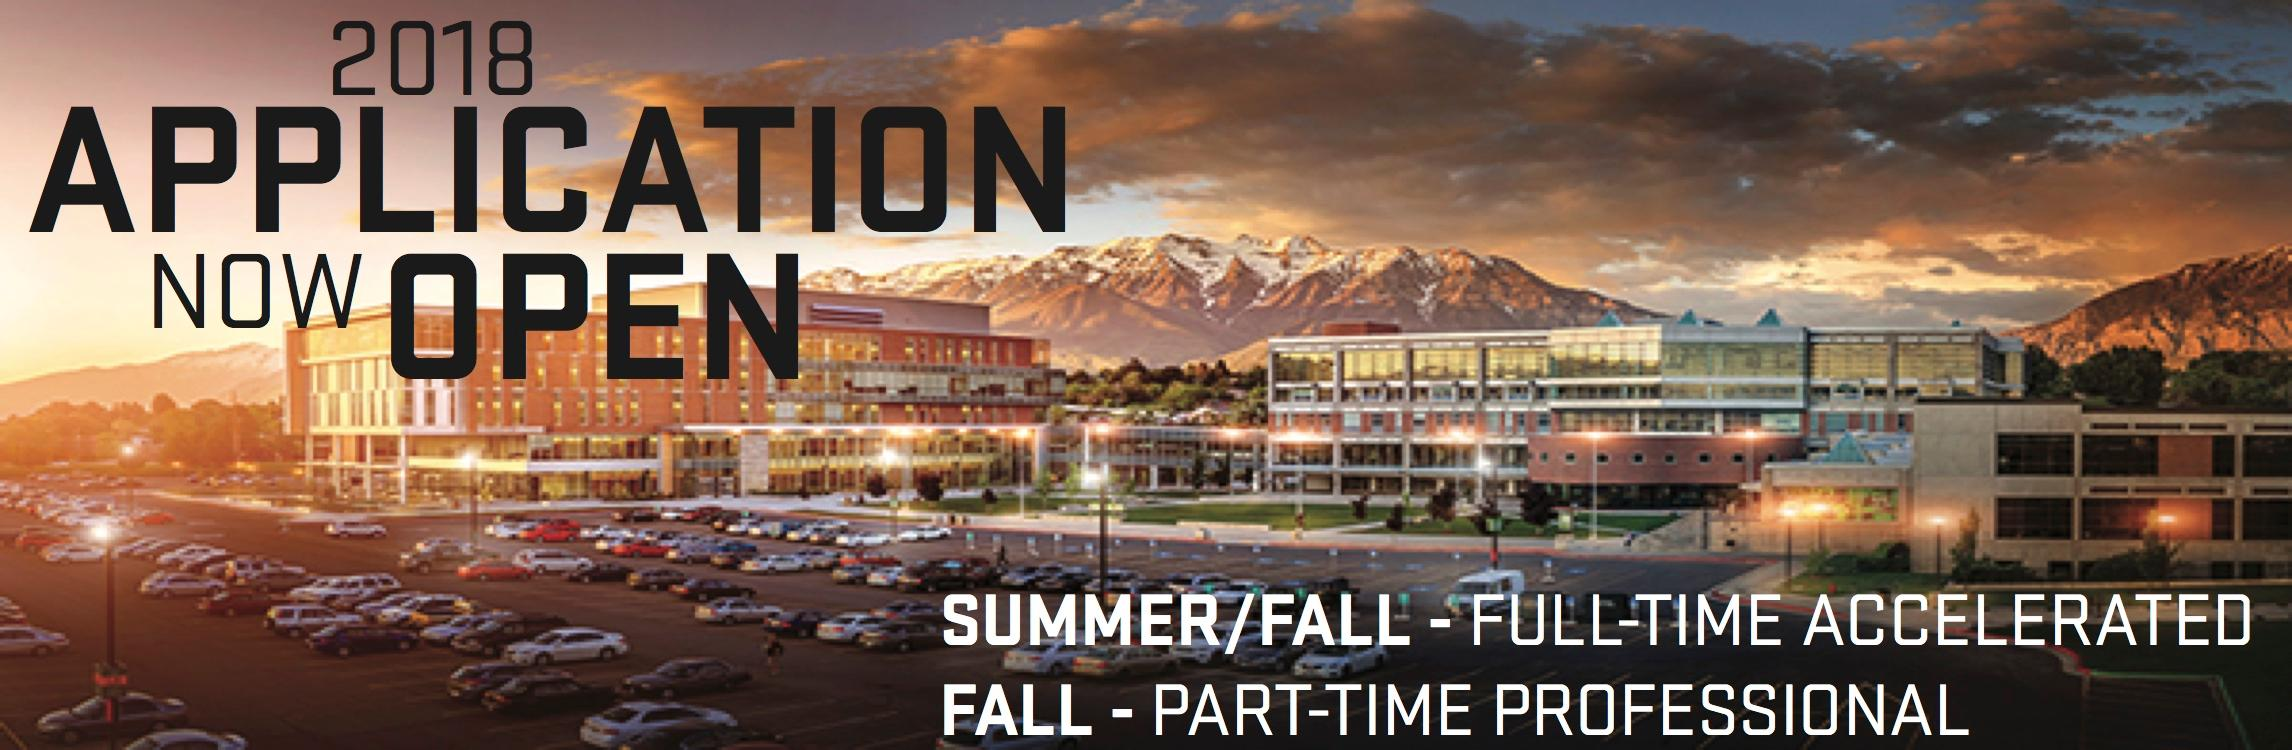 Application now open for Summer and Fall 2018 at Orem Campus